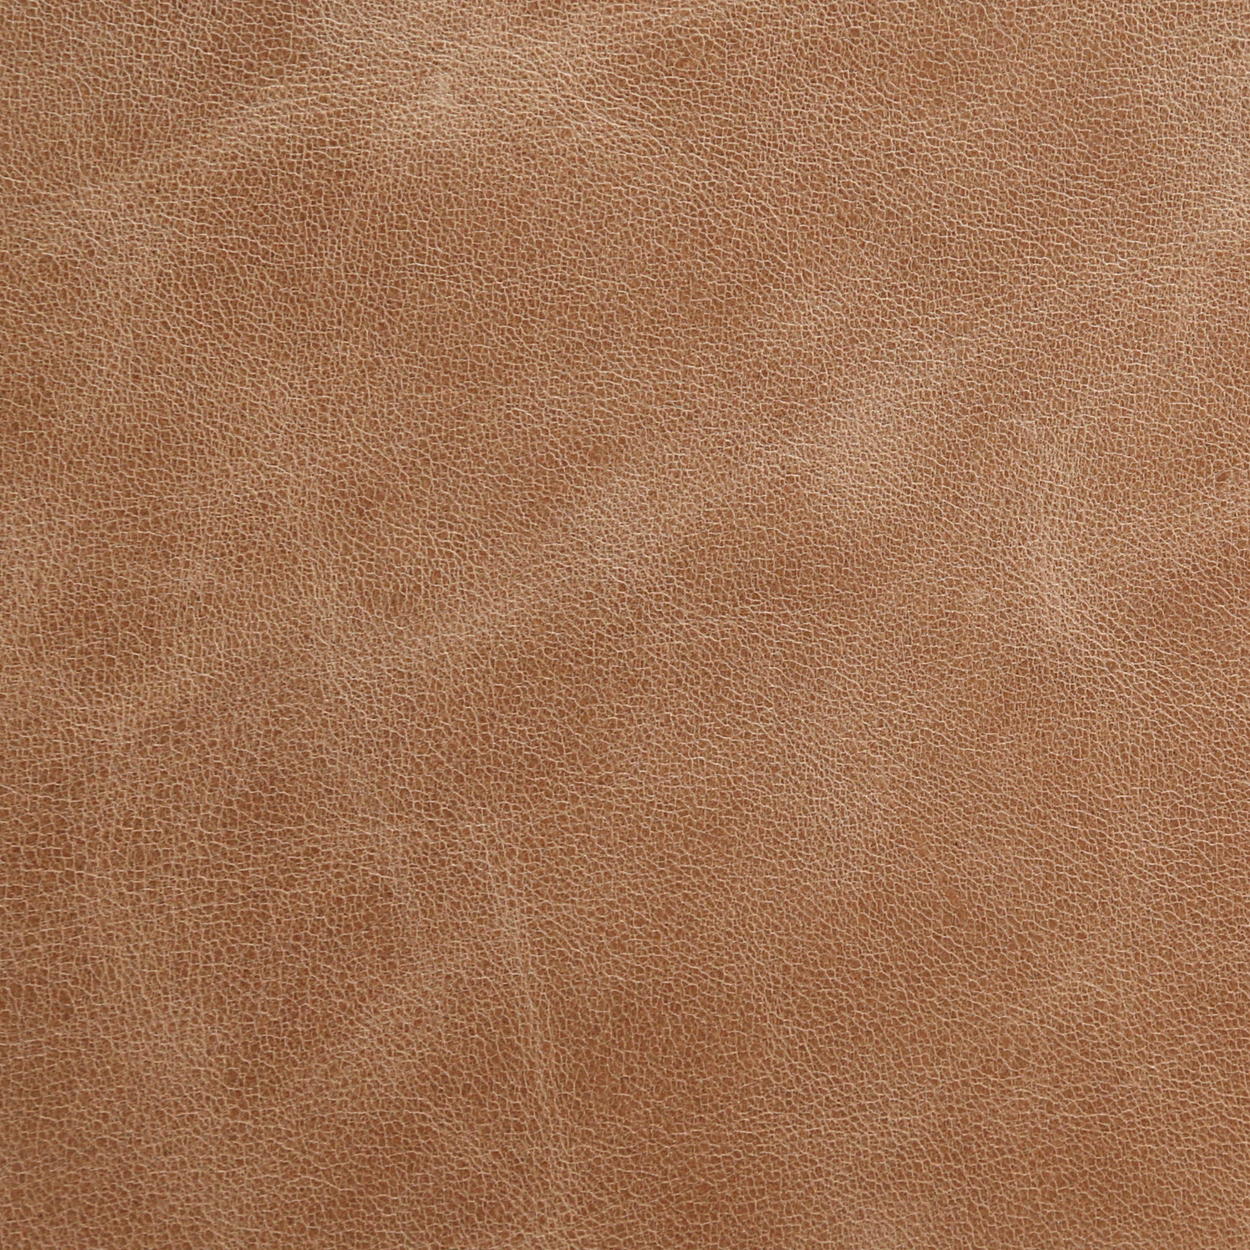 Leather-Distressed-Sahara.jpg